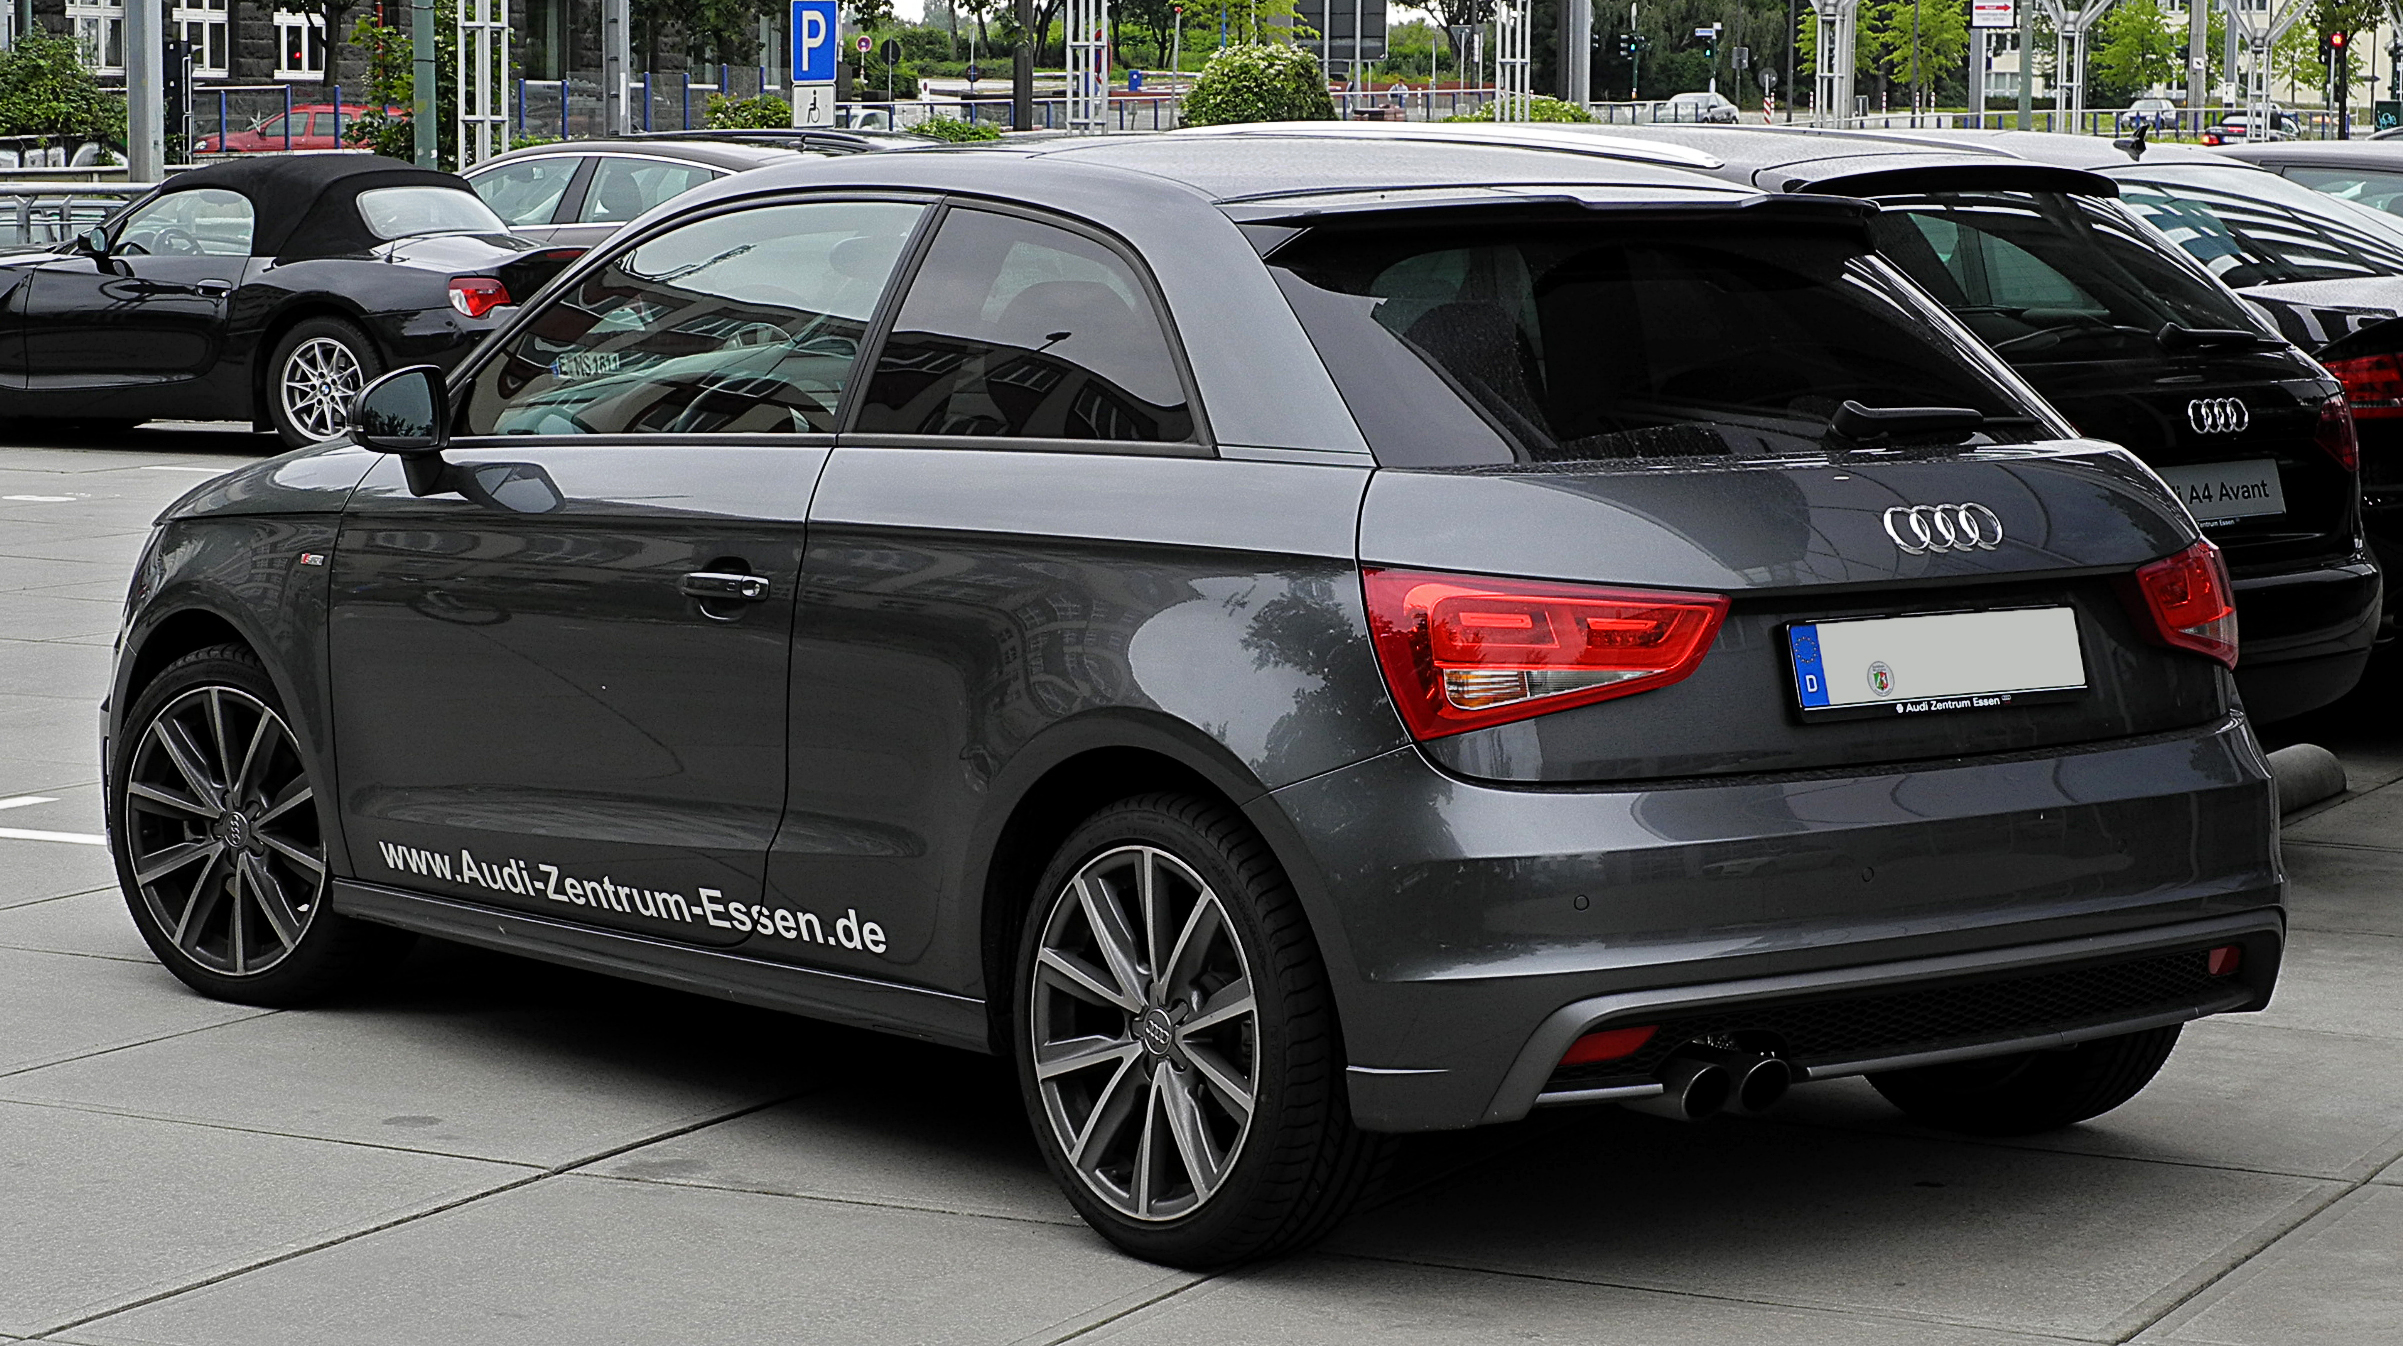 file audi a1 1 4 tfsi ambition s line heckansicht 3 juli 2011 wikimedia commons. Black Bedroom Furniture Sets. Home Design Ideas